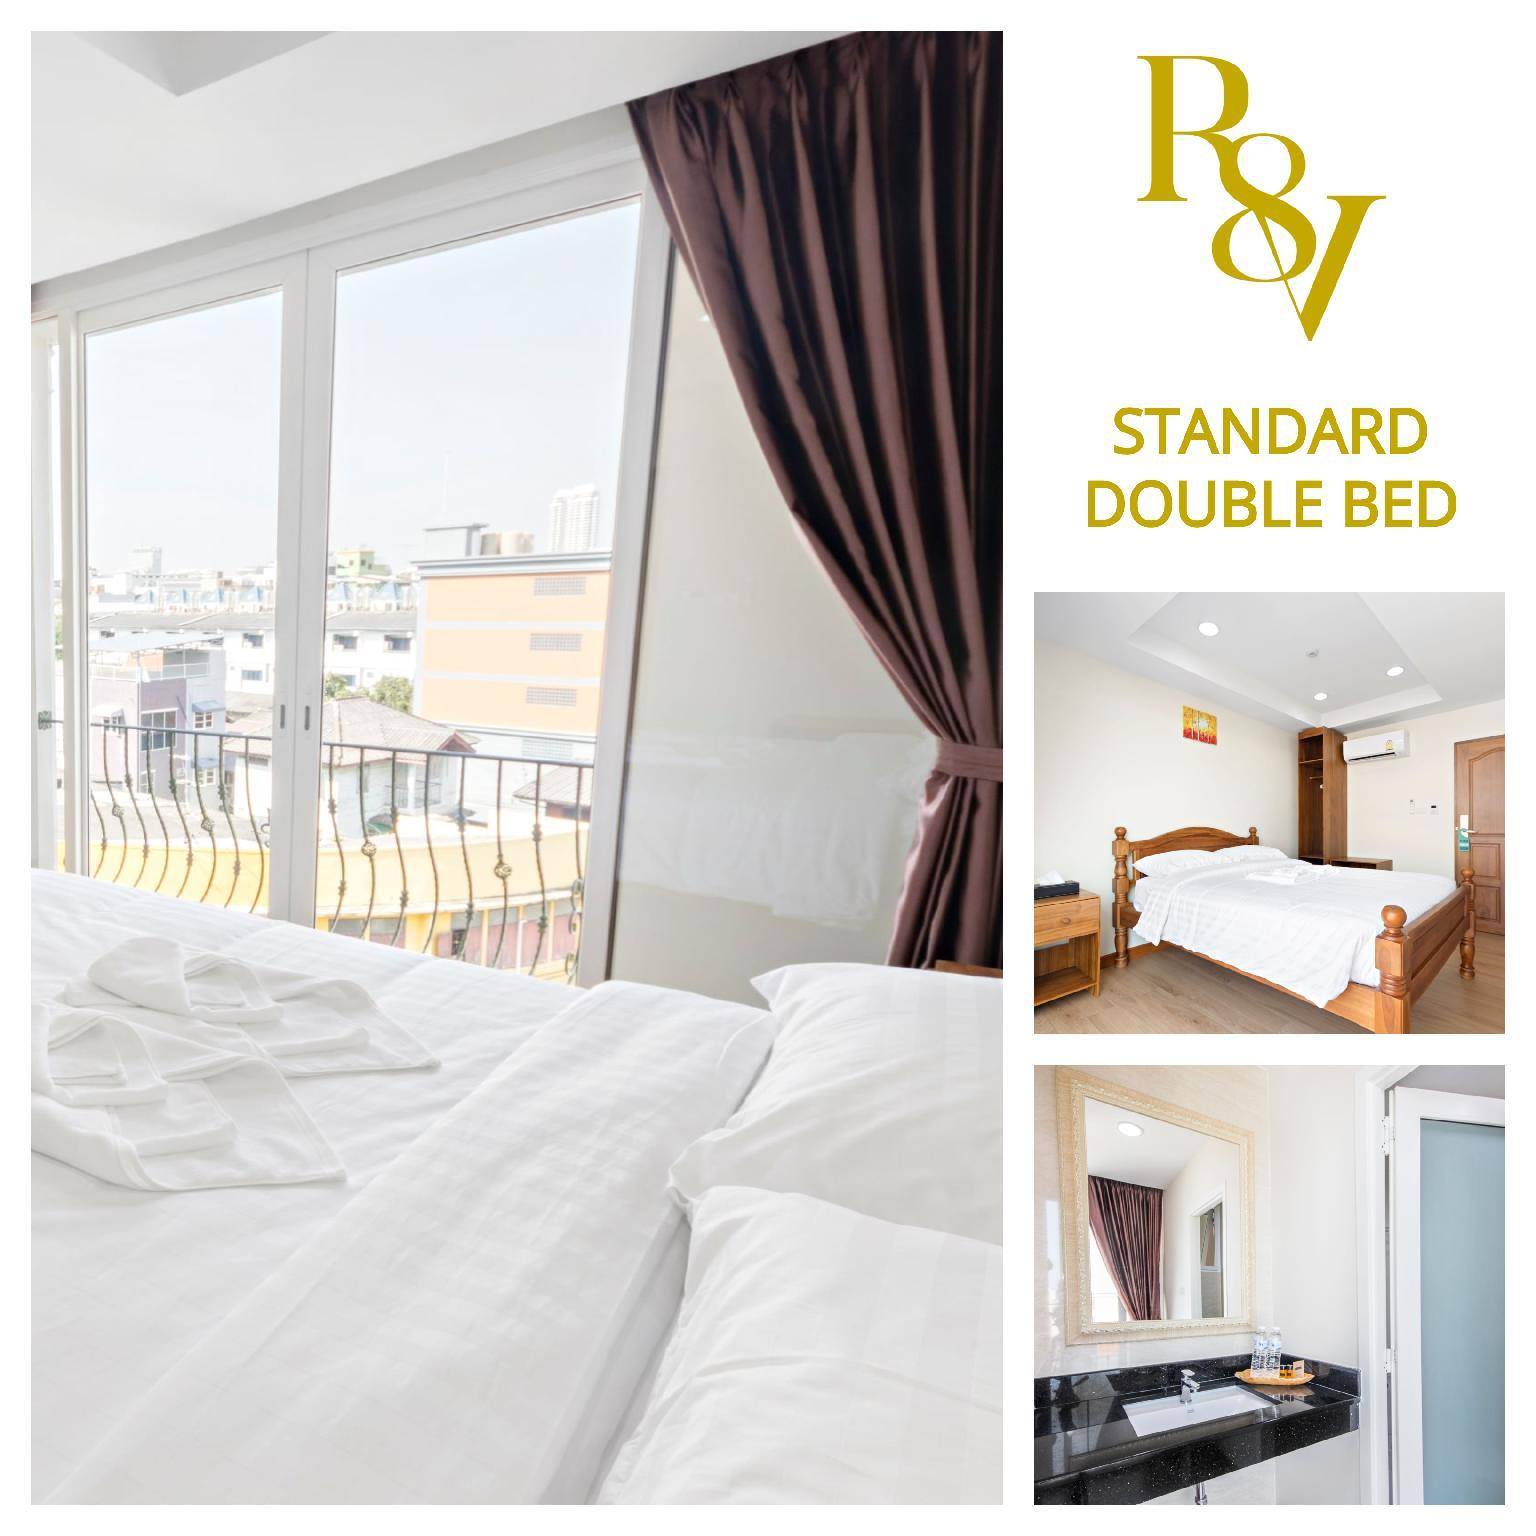 Standard Double Bed  SDB  Royale 8 Ville